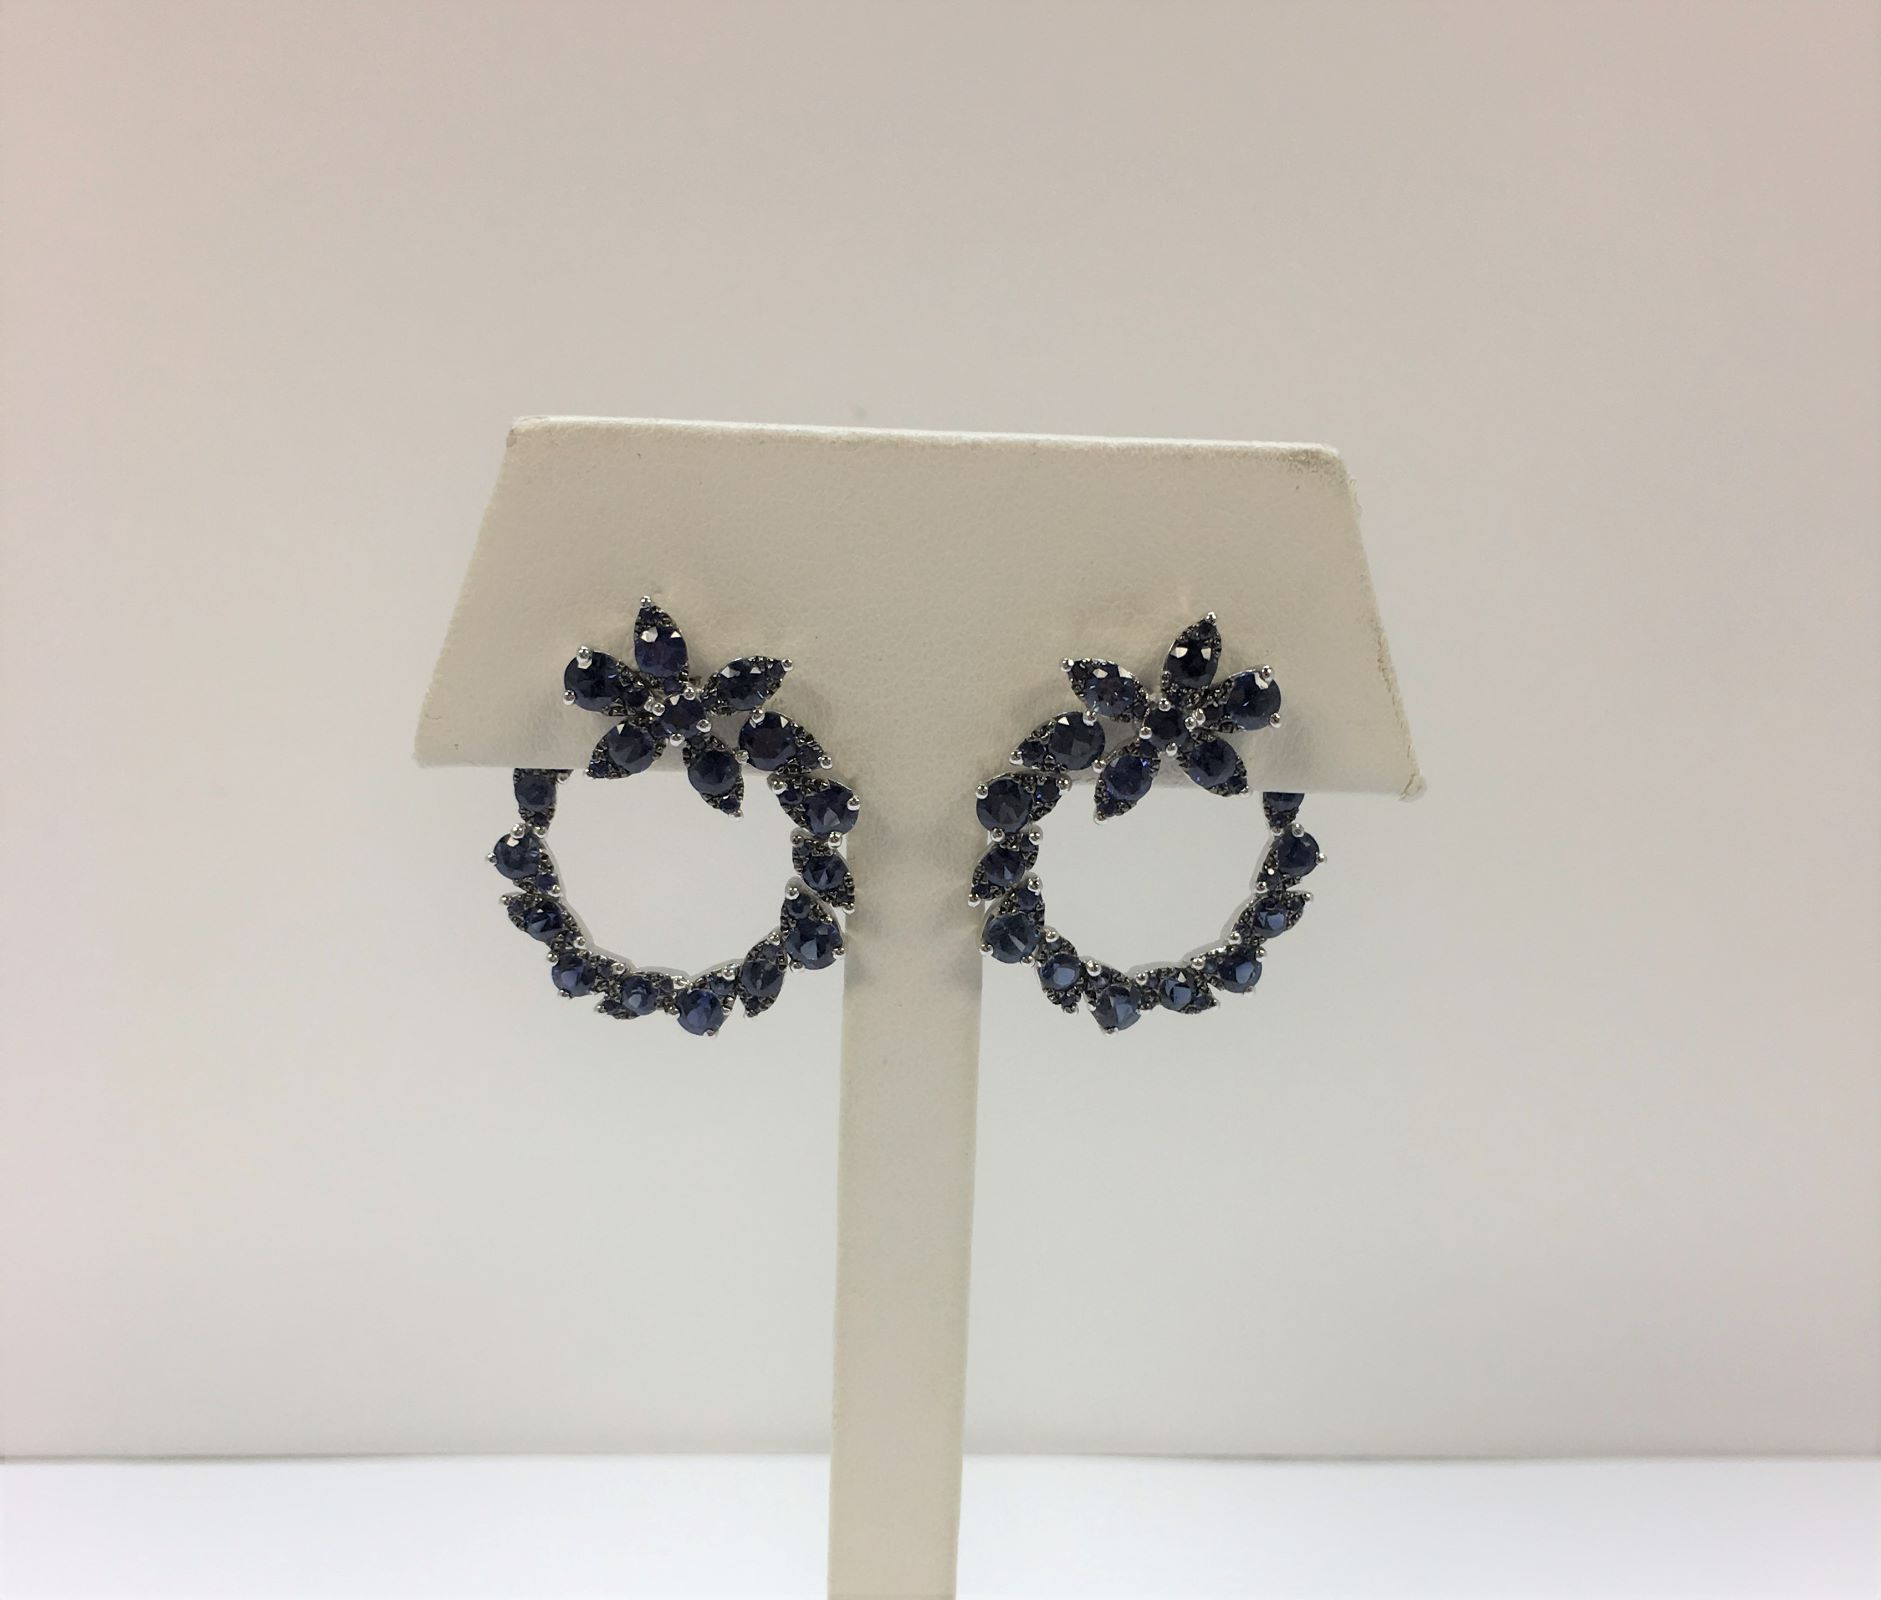 4 Carats Floral Design Sapphire White Gold Earrings